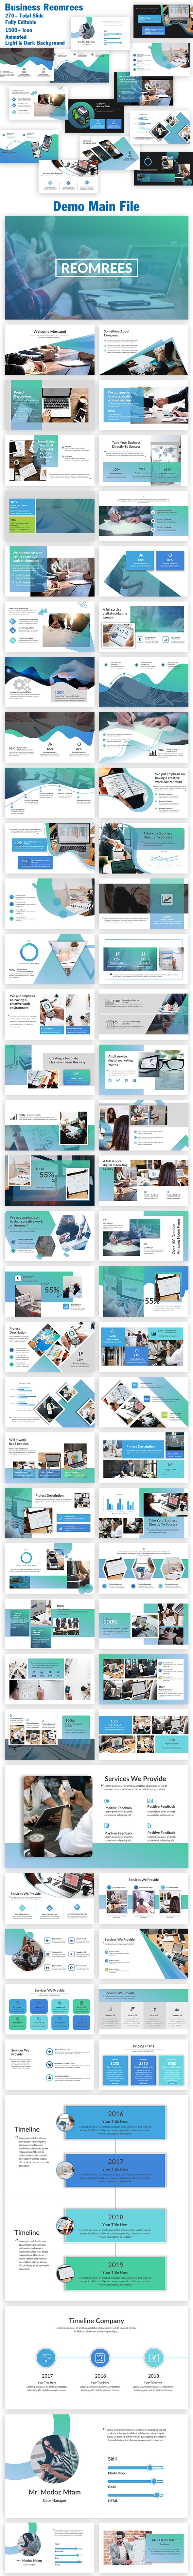 Business Reomrees PowerPoint Template - Business PowerPoint Templates